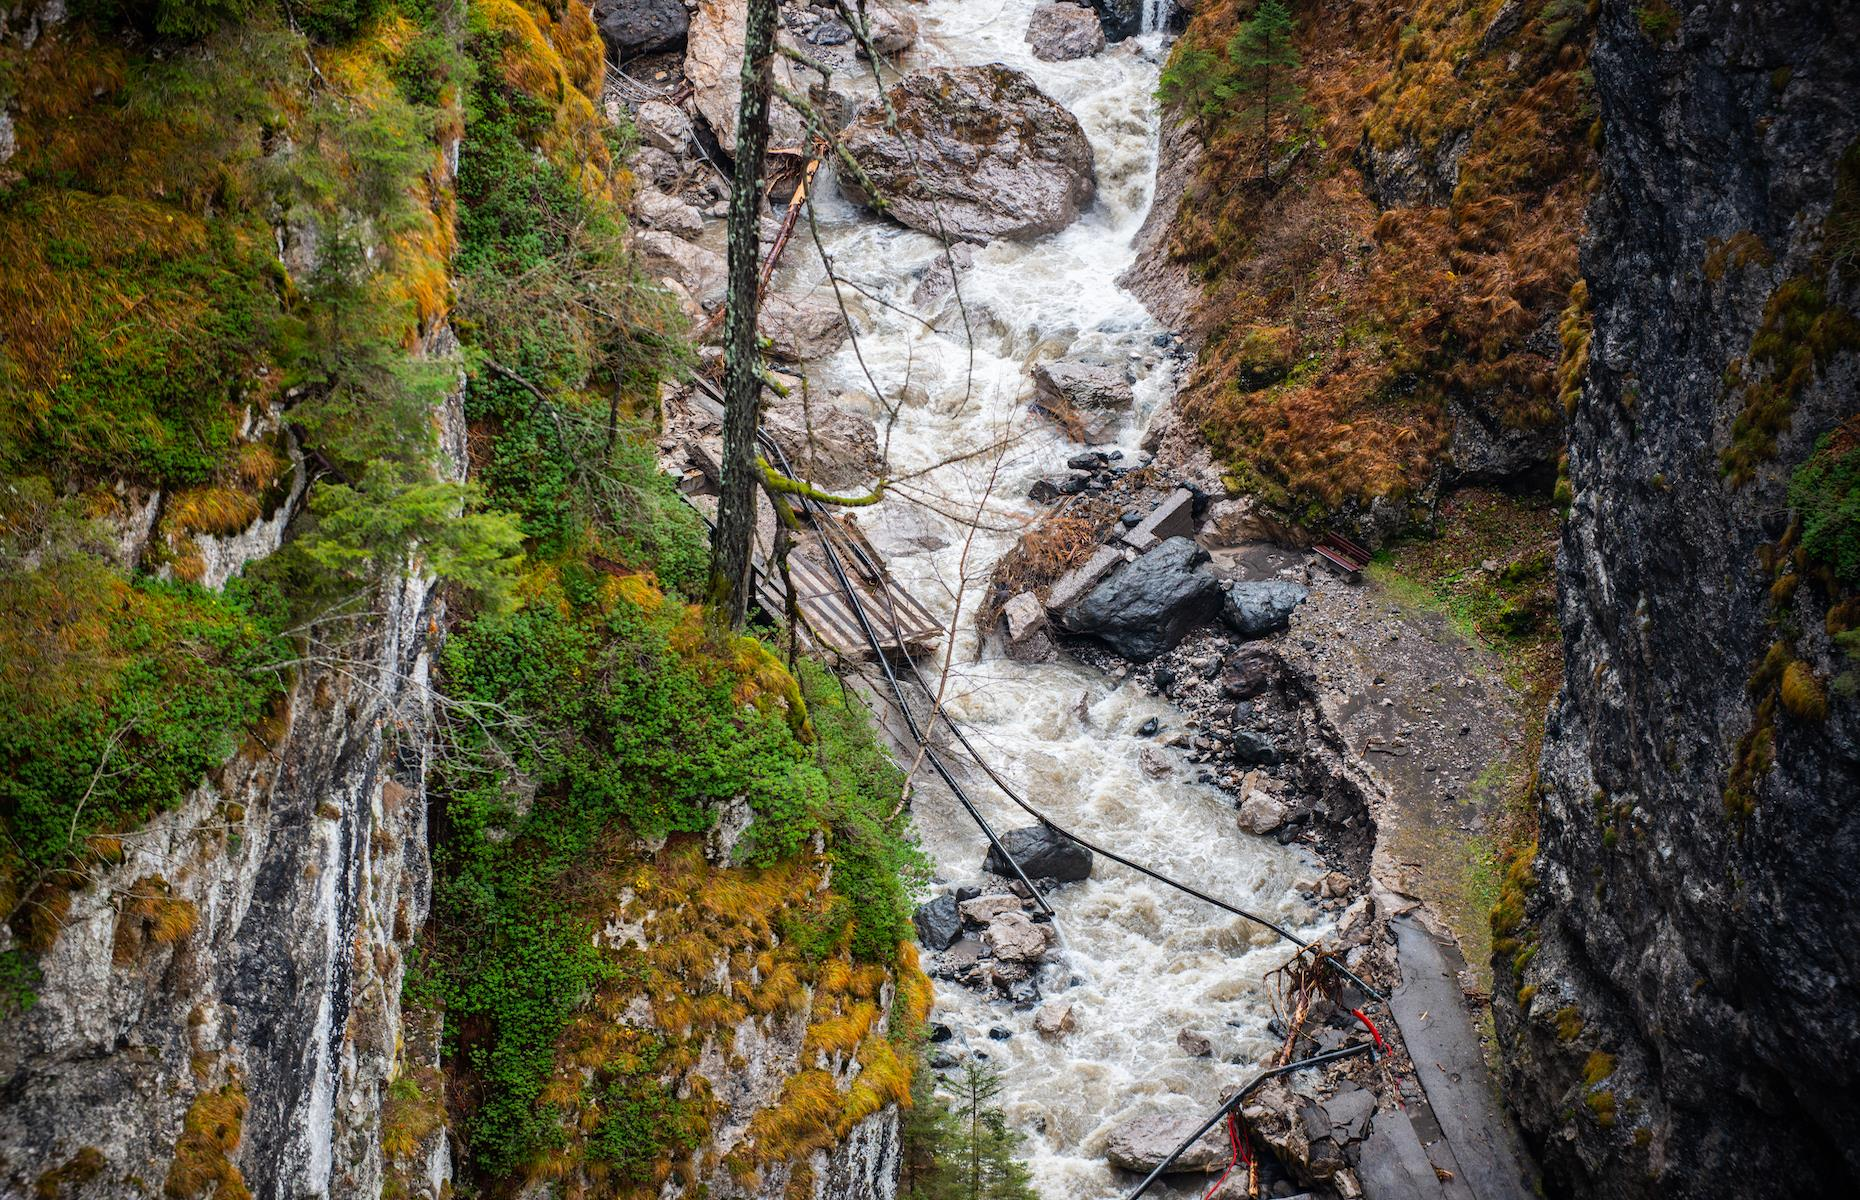 Slide 15 of 31: The heavy rains and gales, which buffeted the Dolomites as well as other parts of Italy for five days, also caused mudslides and flooding. The narrow and winding road that follows the Pettorina river through the Sottoguda gorge, a popular tourist attraction, was totally demolished by the flooding (pictured). It is thought that around 14 million pine trees and red spruces were also razed by the storms.